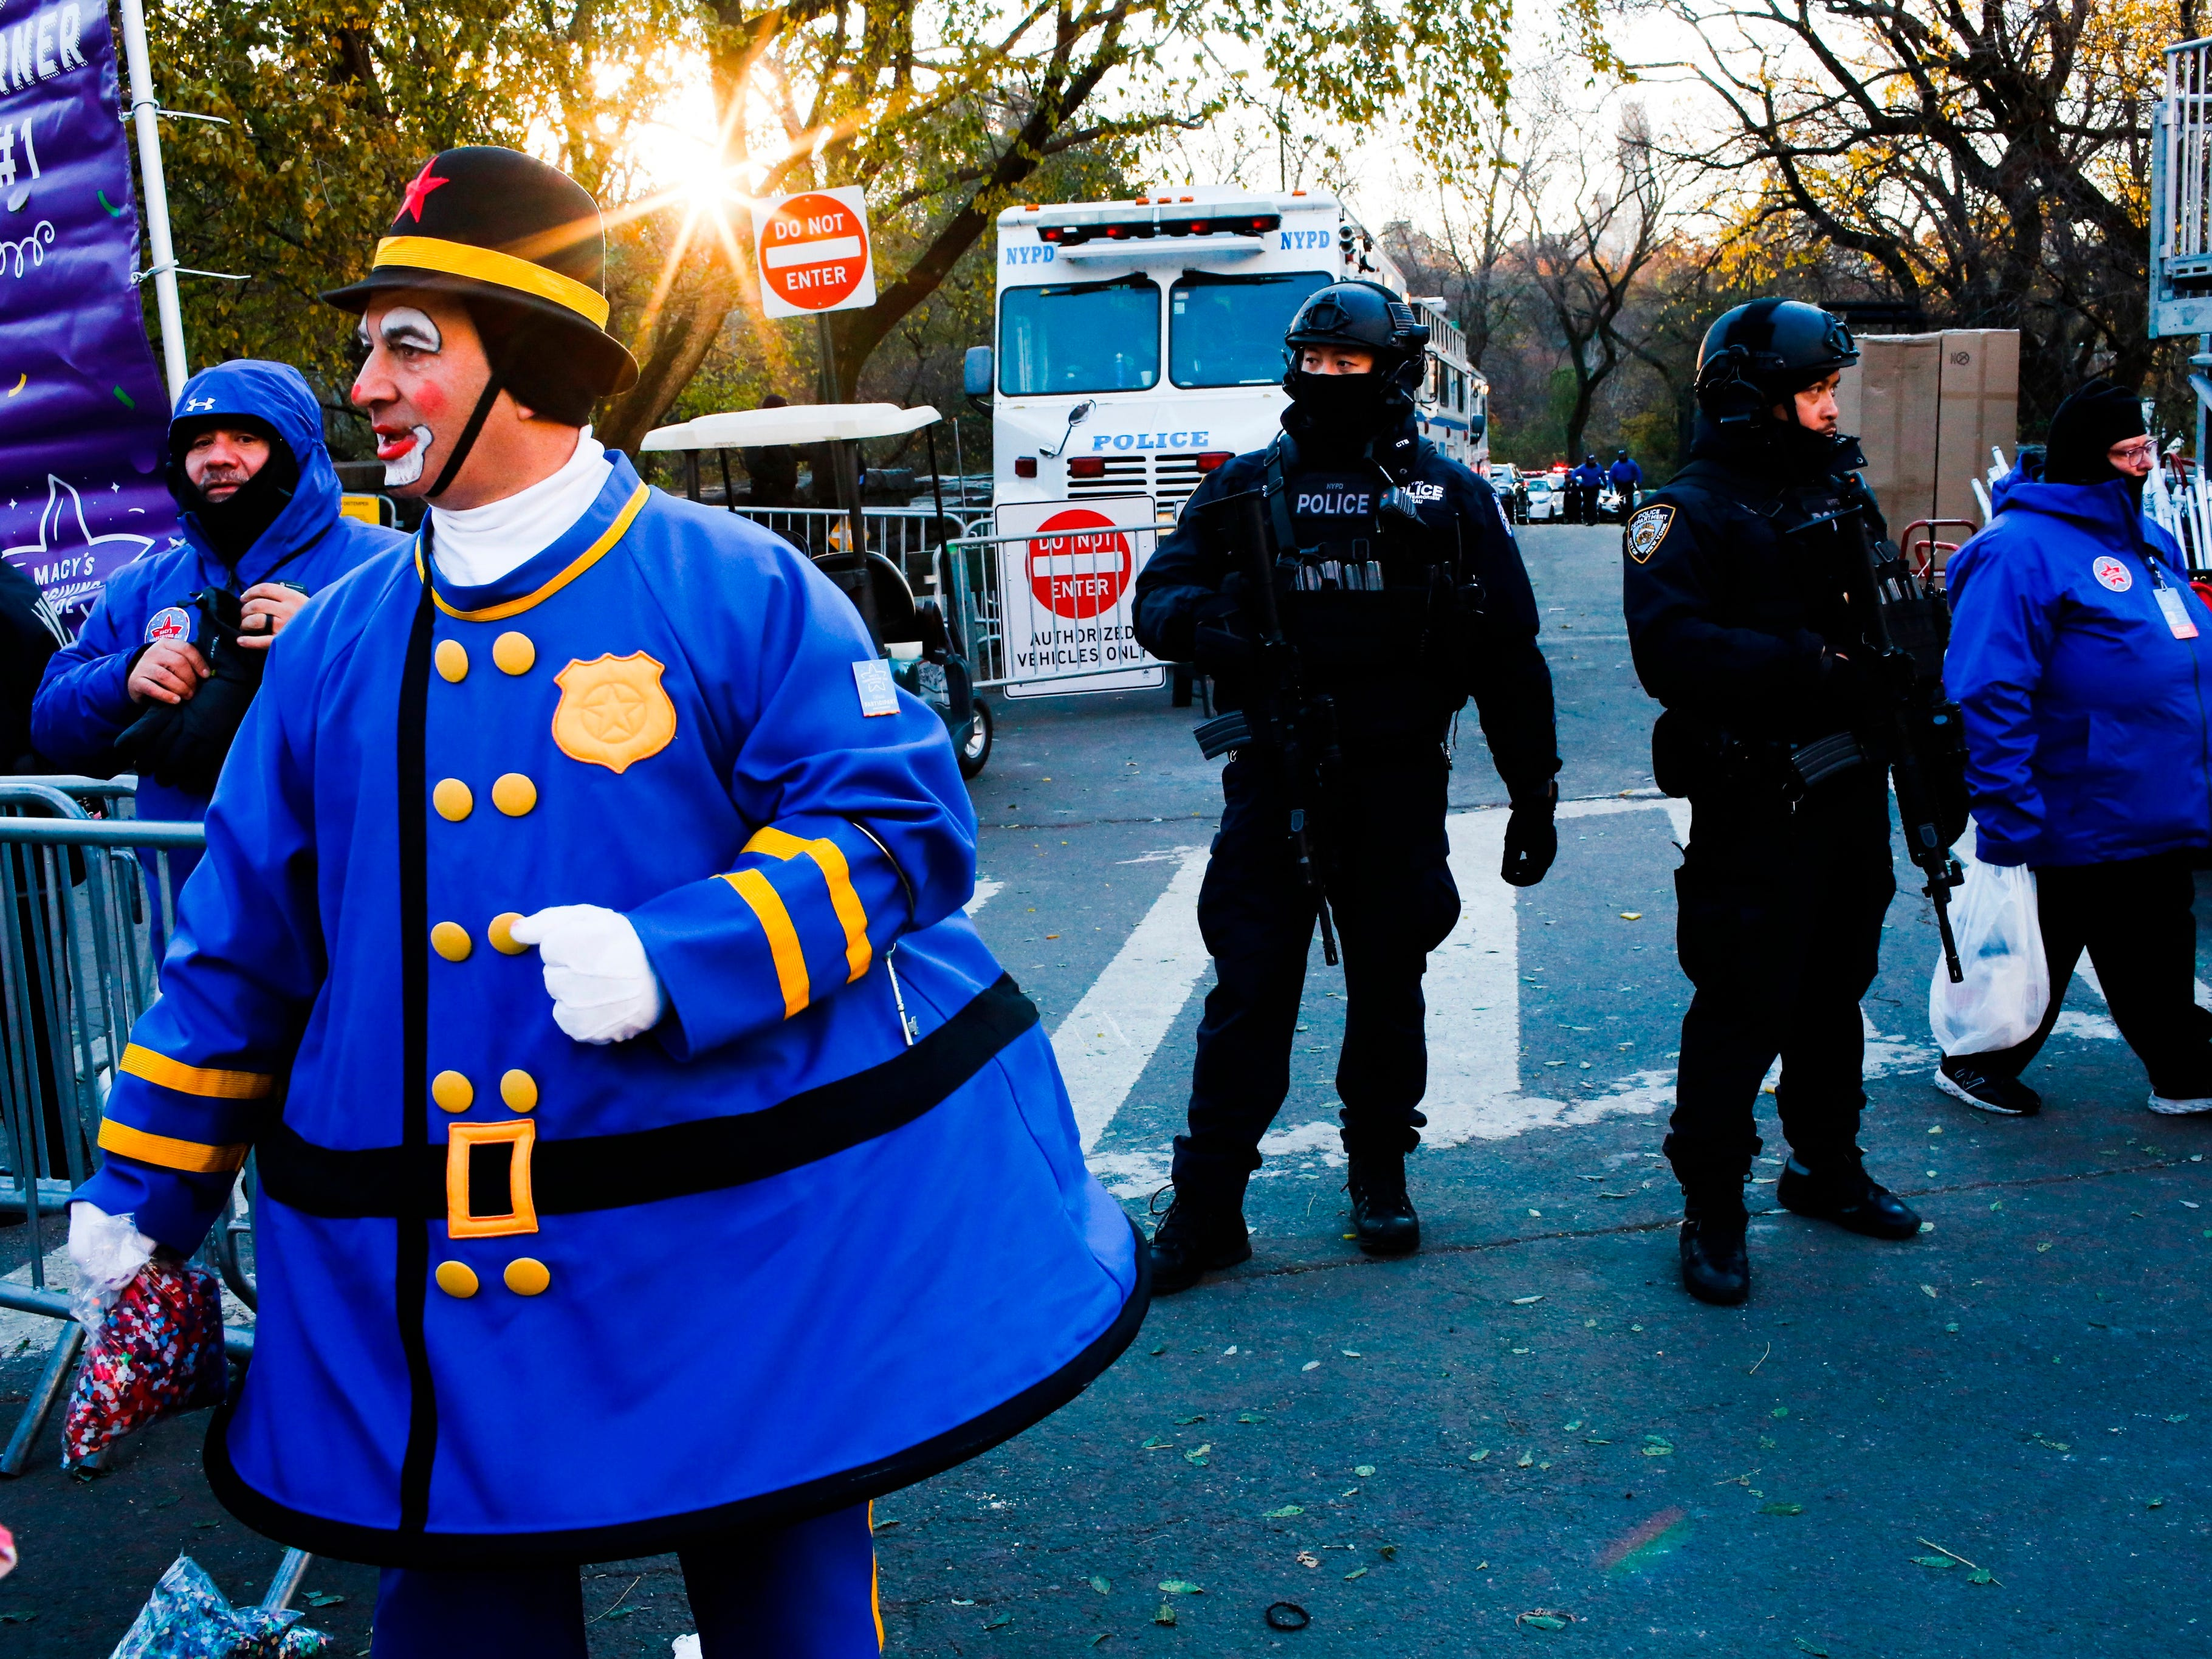 Police and people in costume take a position along the route before the start of the 92nd annual Macy's Thanksgiving Day Parade in New York, Thursday, Nov. 22, 2018.